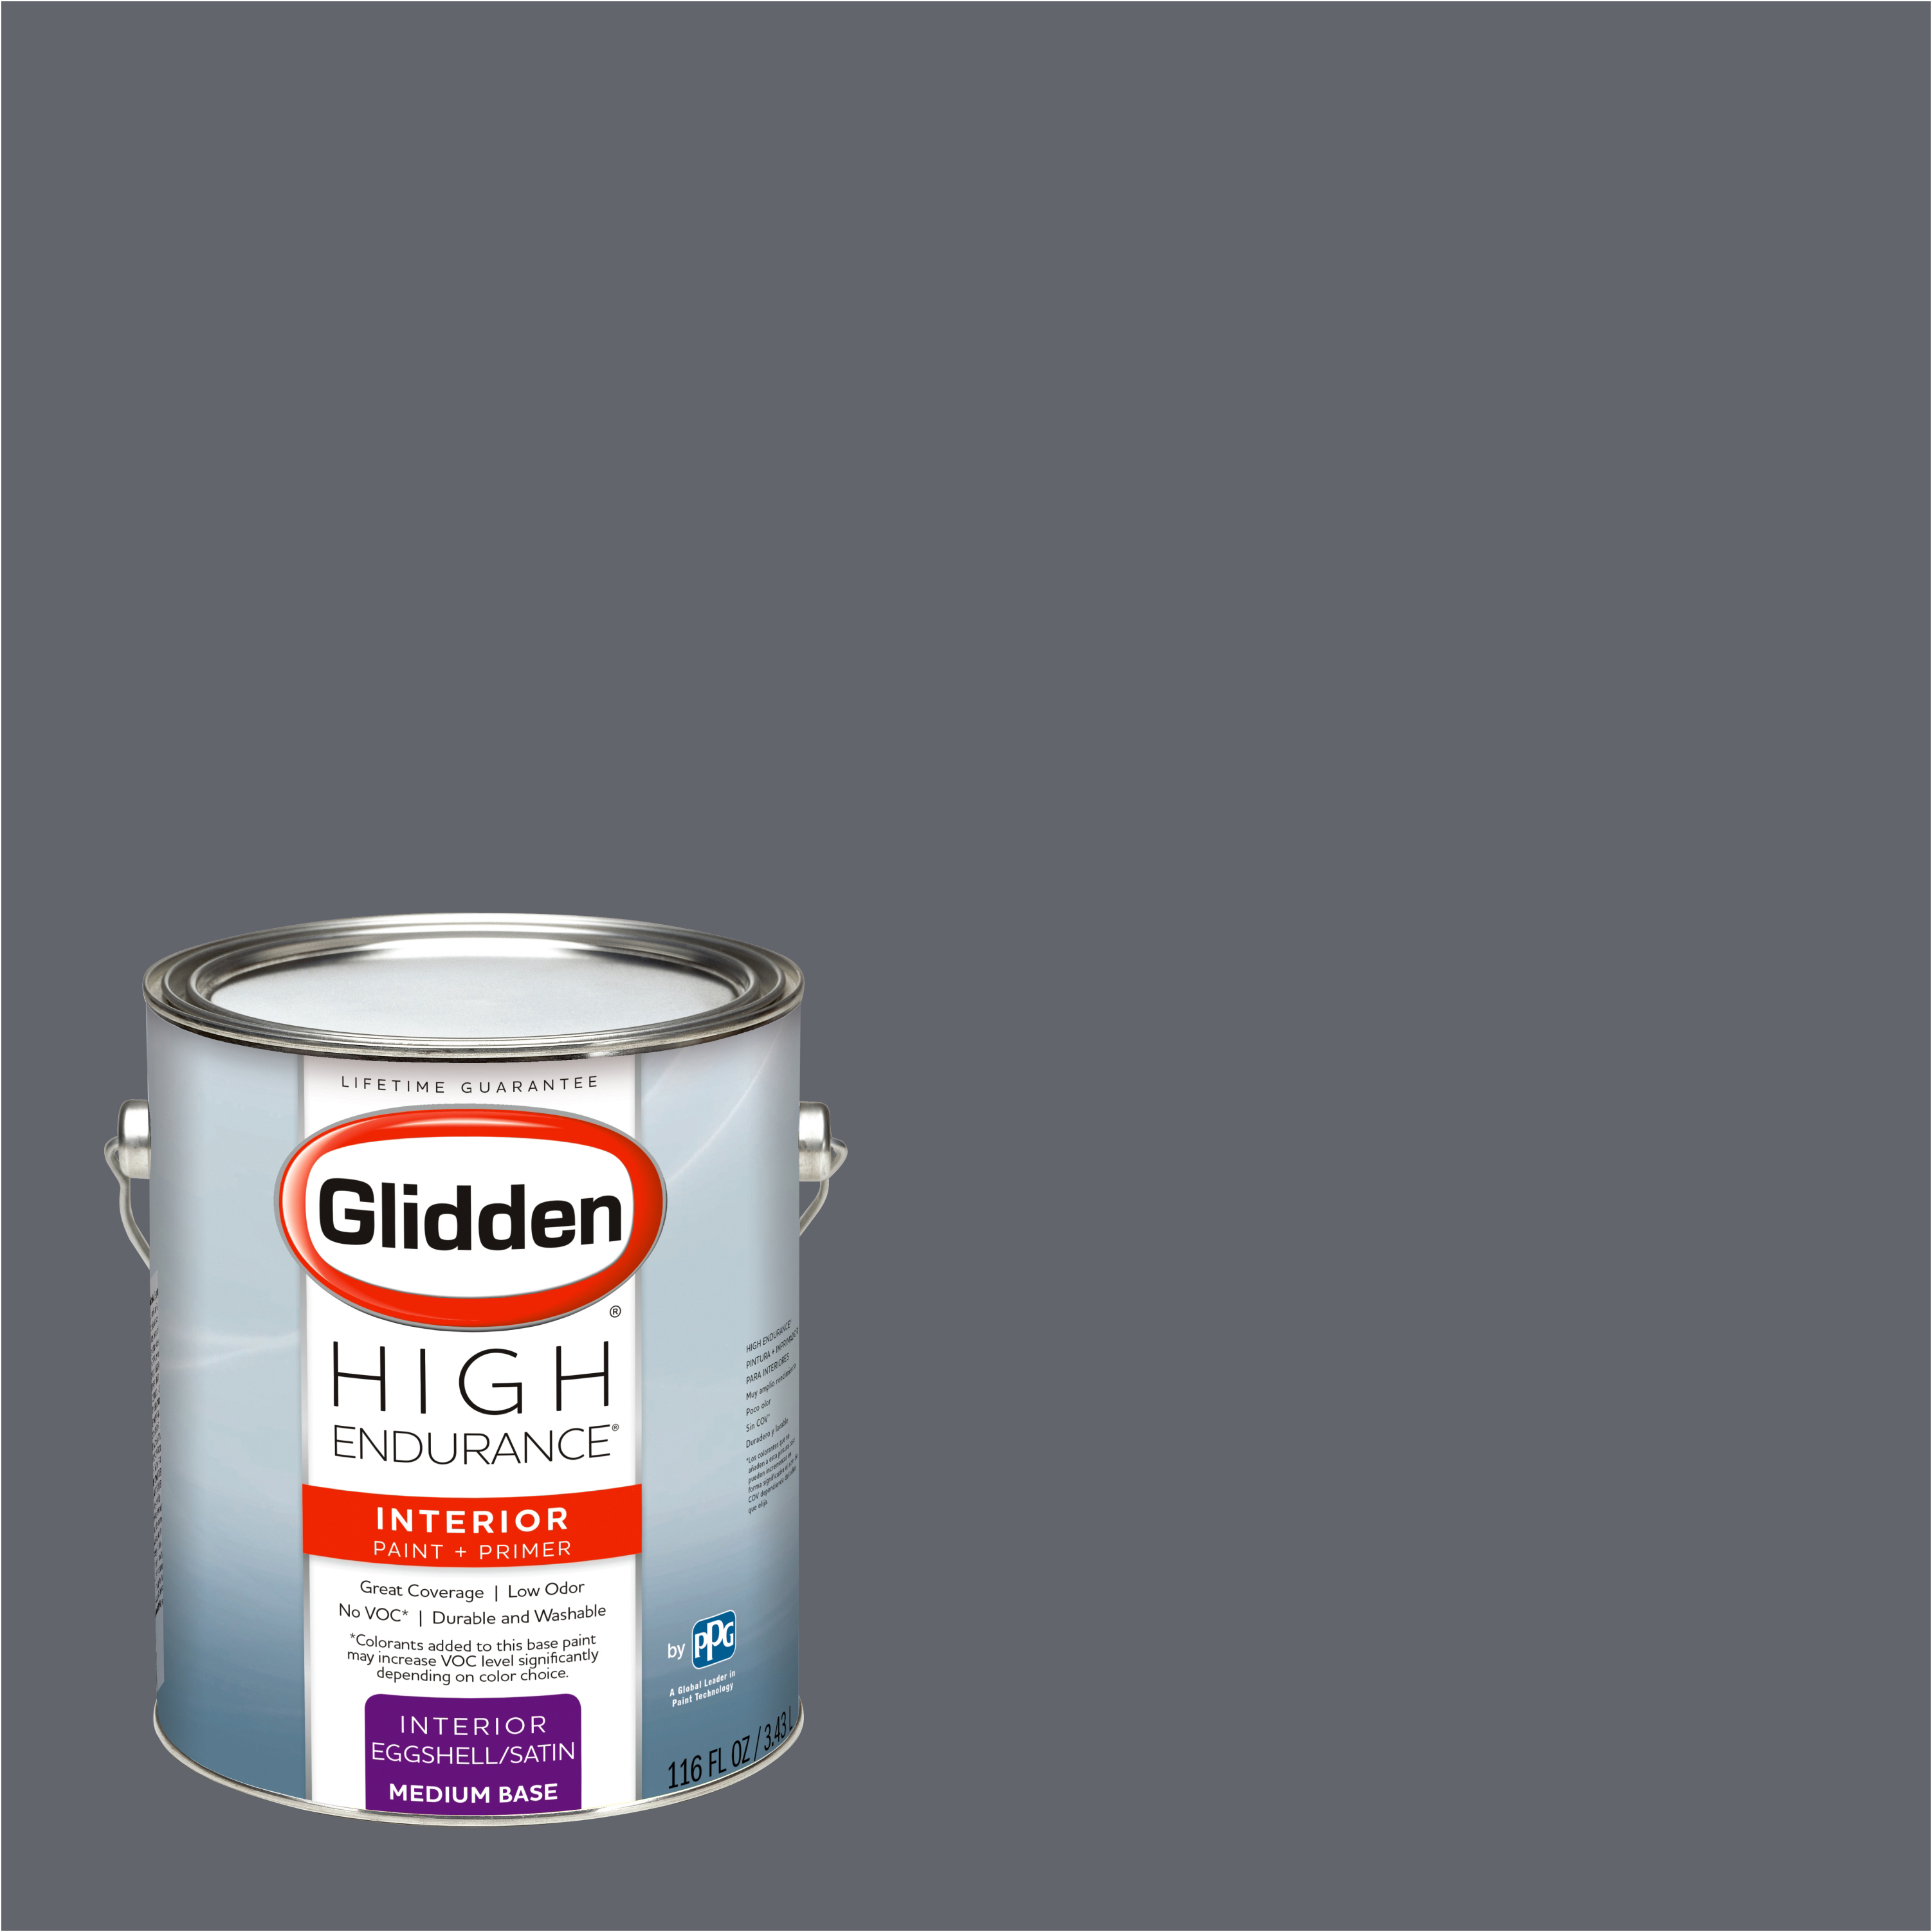 Glidden High Endurance, Interior Paint and Primer, Dark Grey Silk, #30BB 13/034